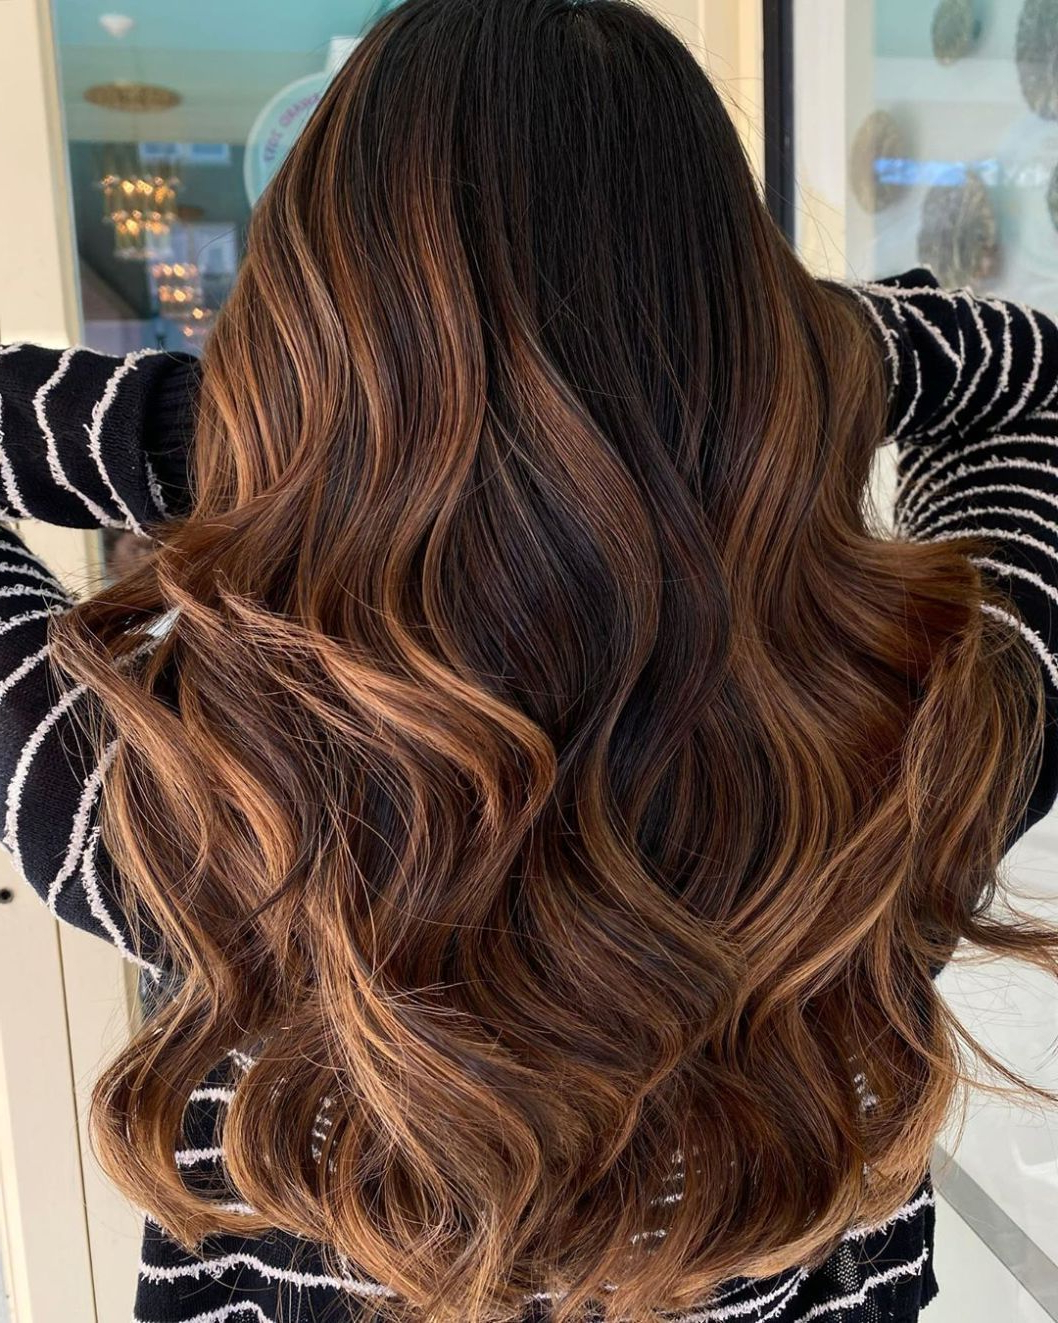 Most Recent Deep Chocolate Curls Hairstyles With High Contrast Highlights In 50 Trendy Brown Hair Colors And Brunette Hairstyles For (View 13 of 20)